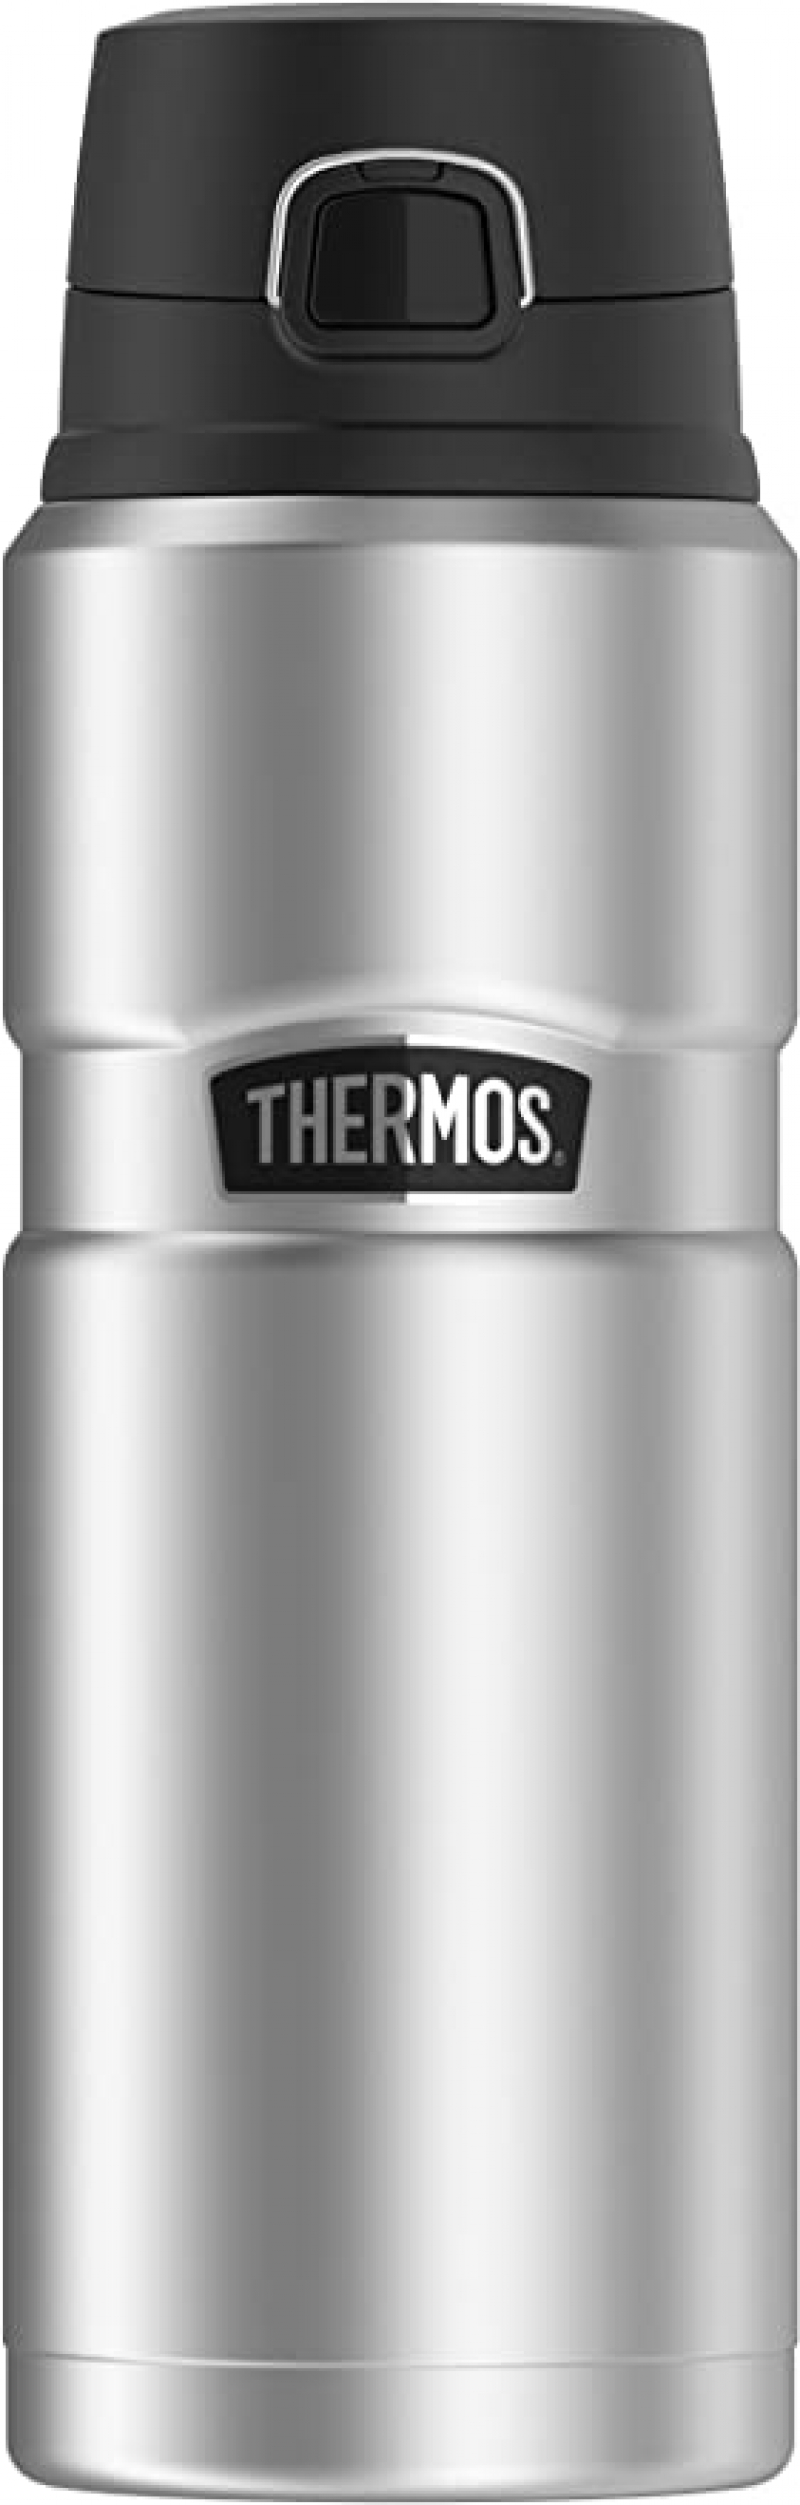 ihocon: THERMOS Stainless King Vacuum-Insulated Drink Bottle, 24 Ounce, Matte Steel  不銹鋼保溫水瓶(保熱12小時, 保冷24小時)